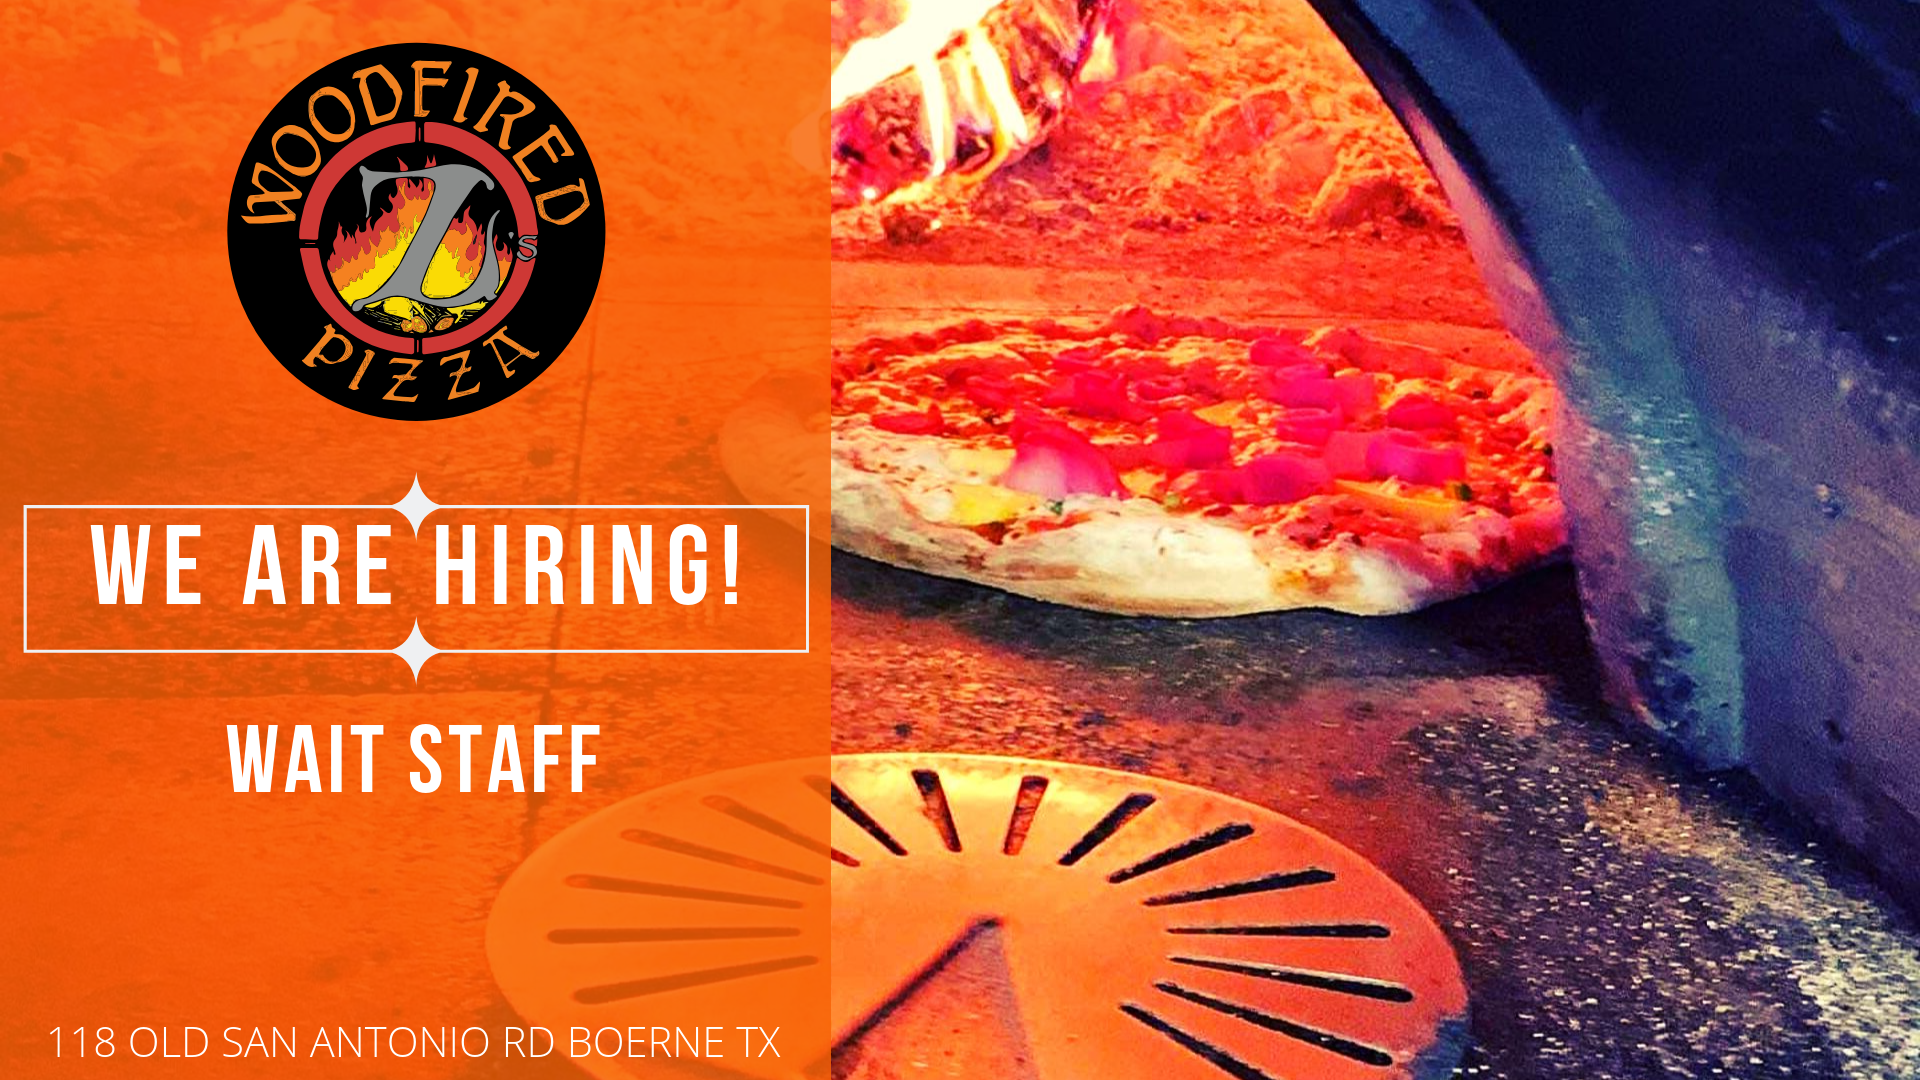 Wait staff - We are looking for professional Wait Staff to serve meals and drinks to the patrons of our business. Ultimately, you should be able to ensure customer satisfaction and augment our establishment's reputation.